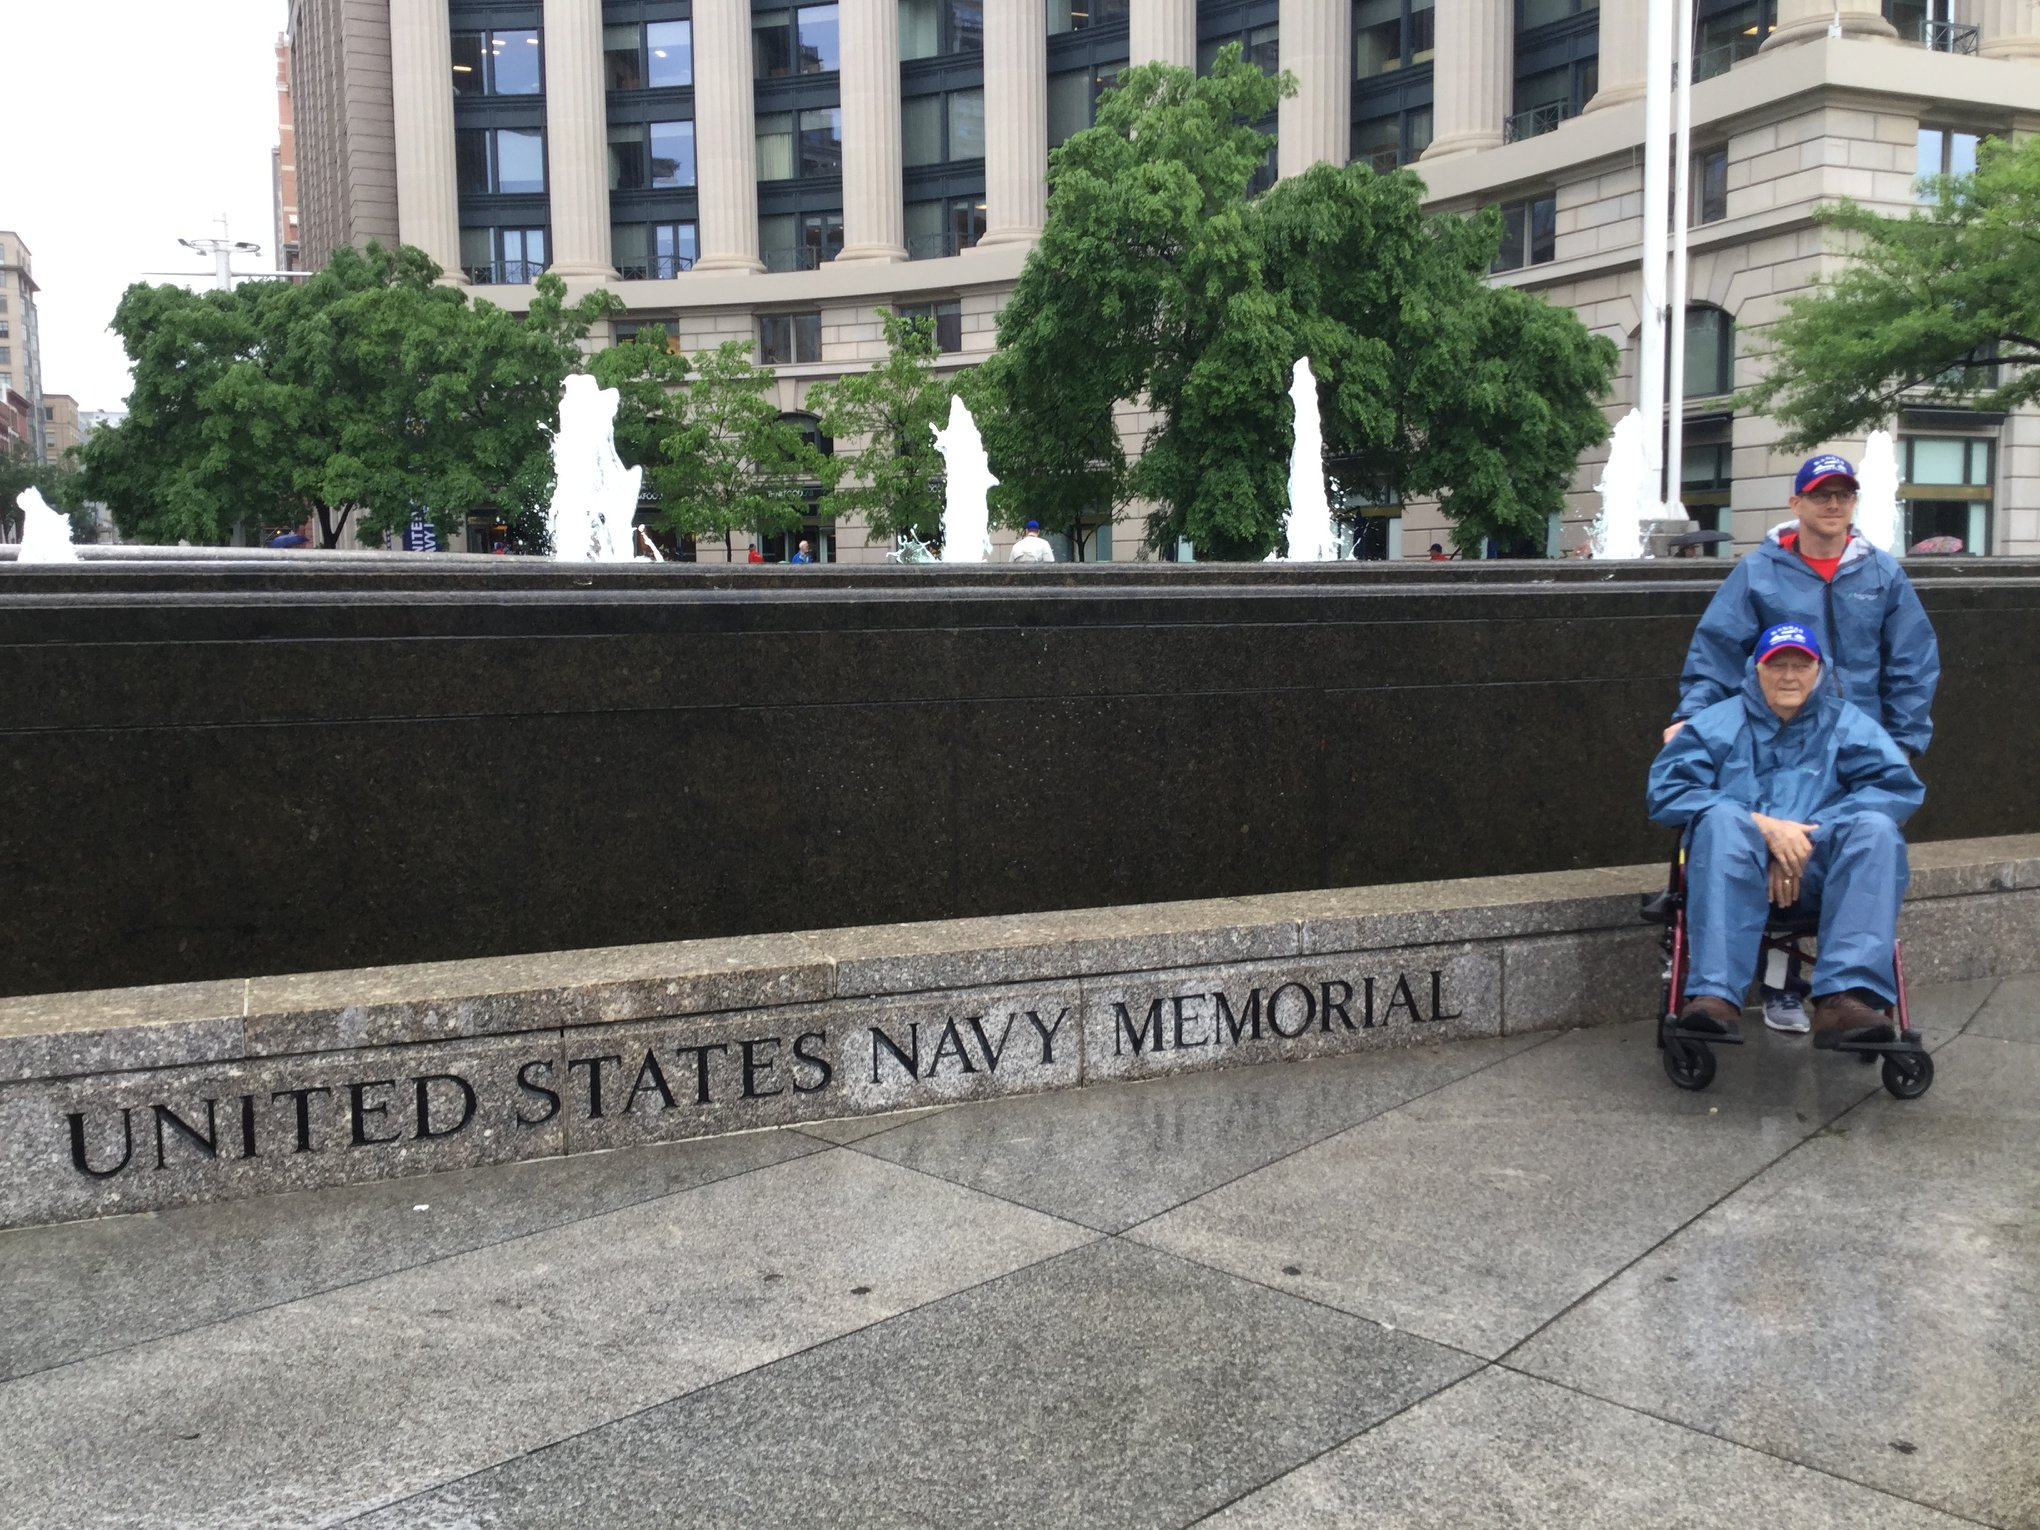 Kansas Veterans at the United States Navy Memorial